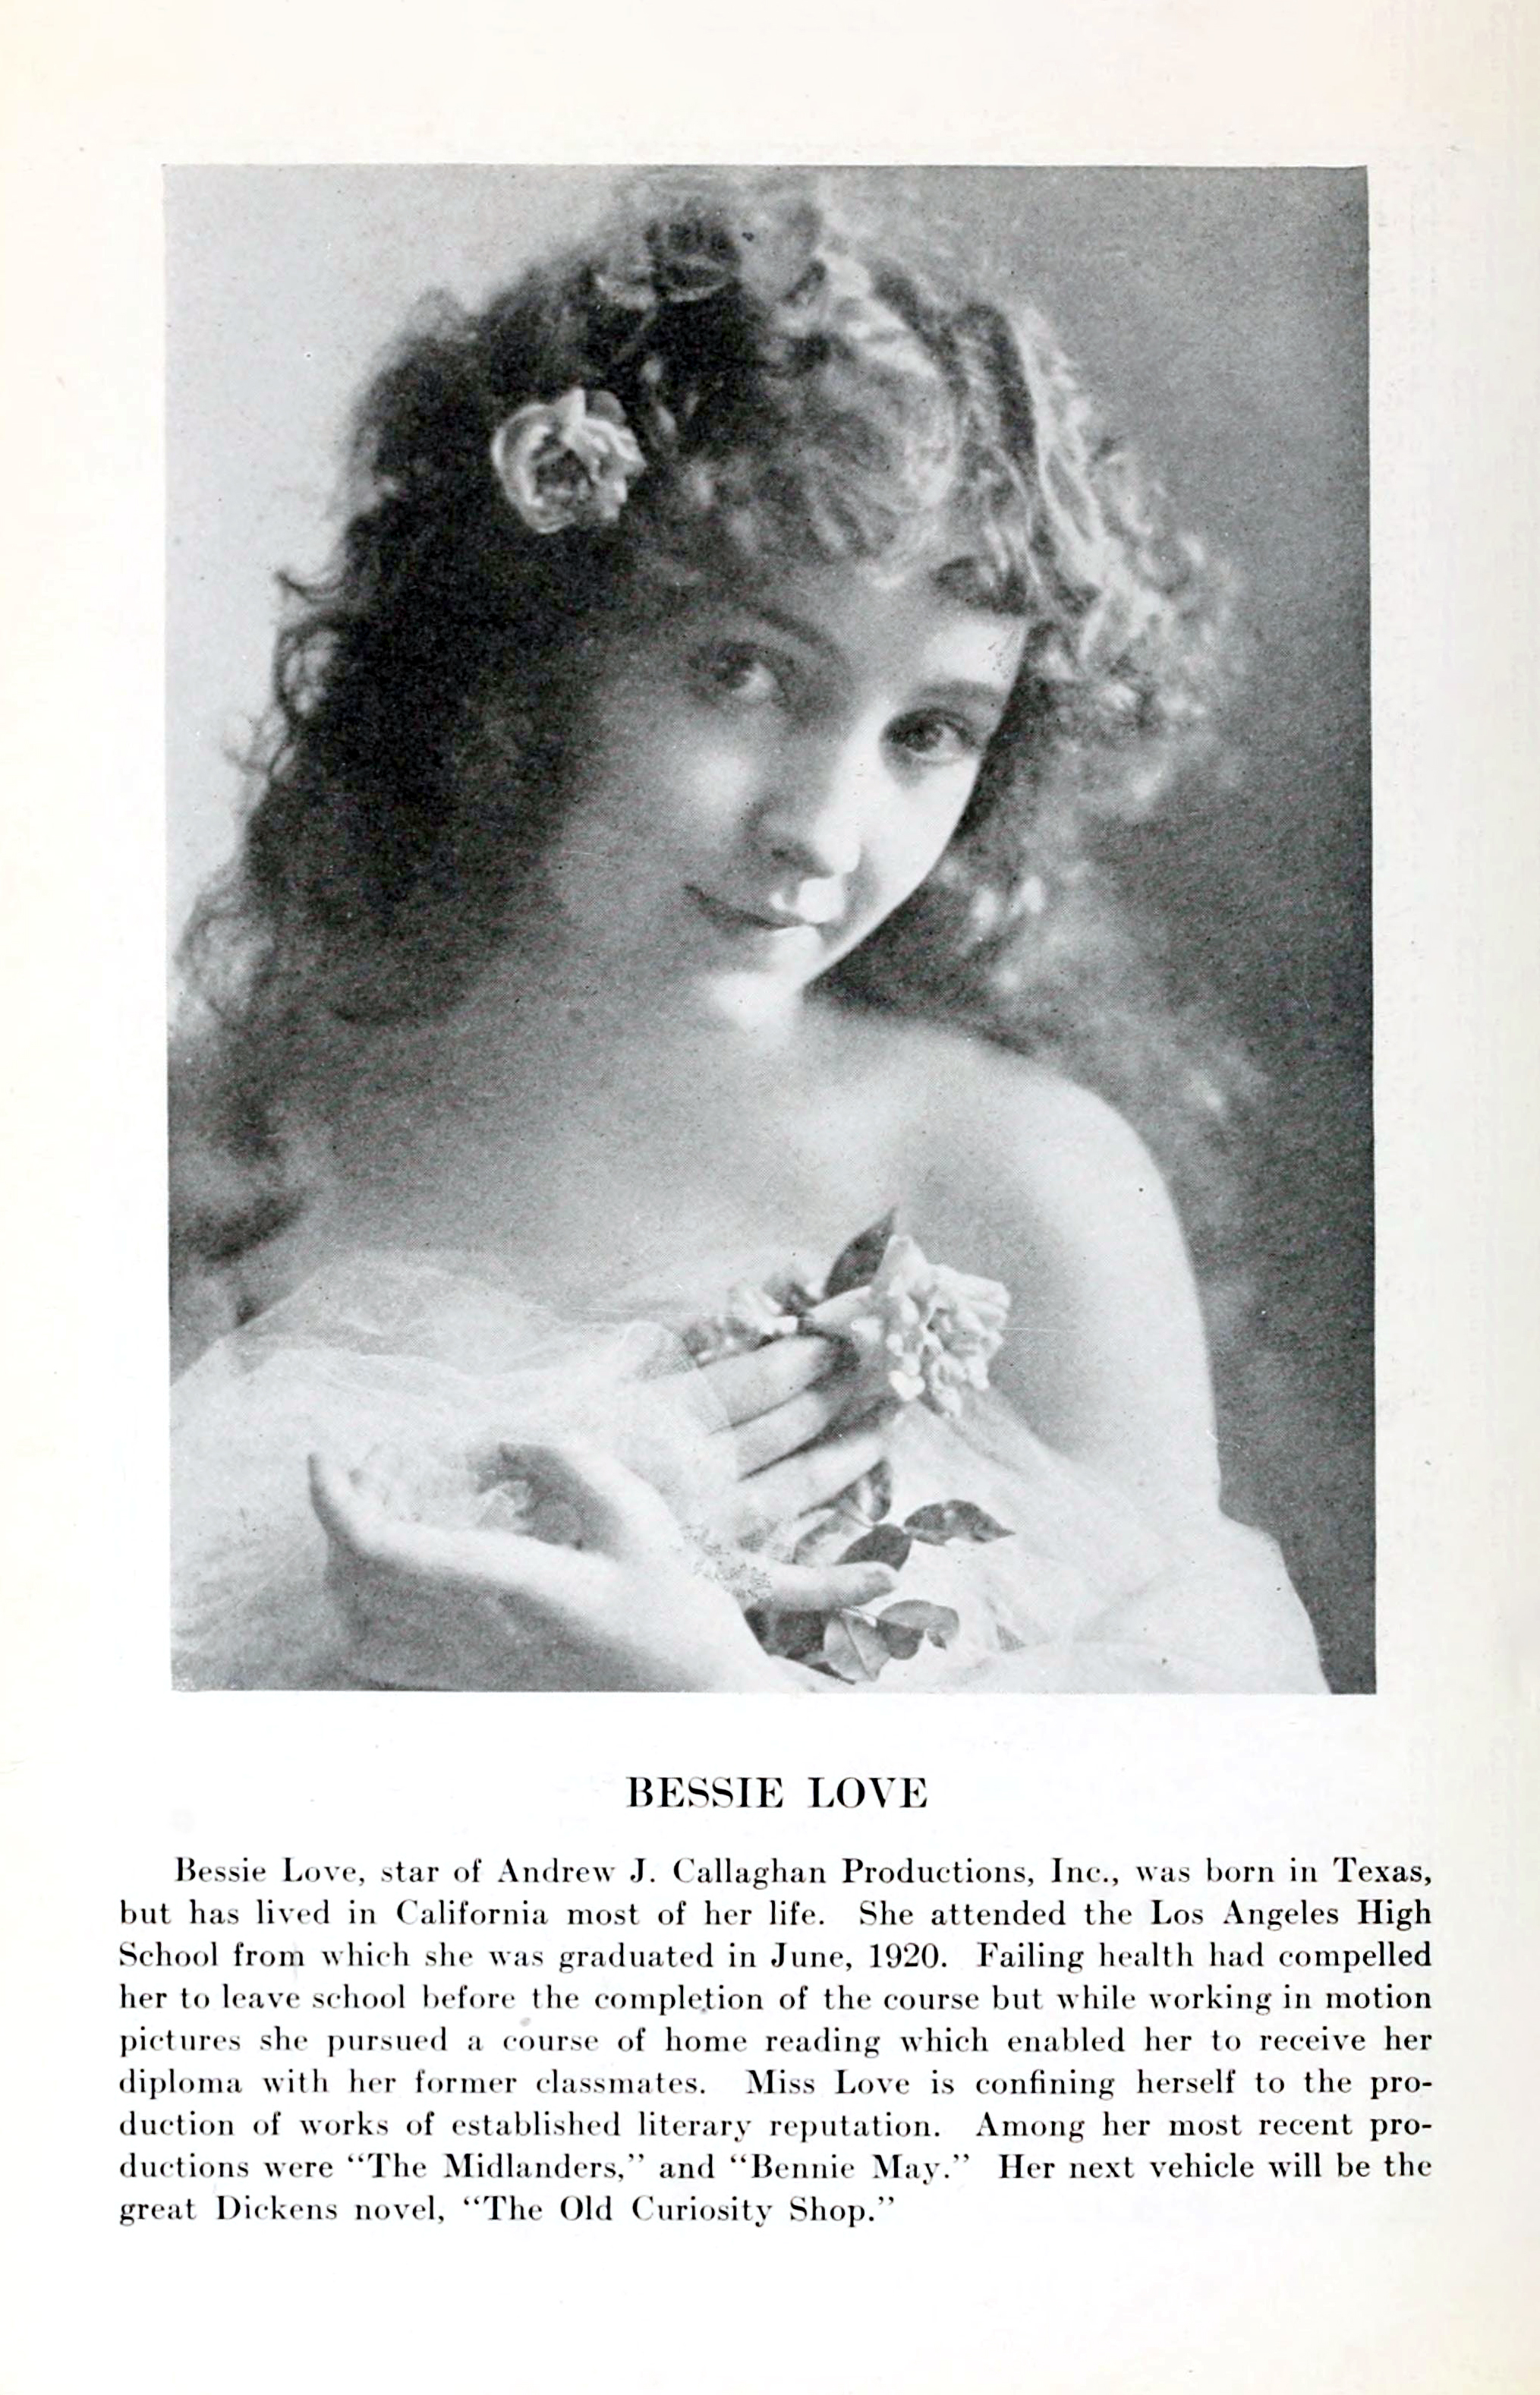 http://upload.wikimedia.org/wikipedia/commons/f/fe/Bessie_Love_Who%27s_Who_on_the_Screen.jpg